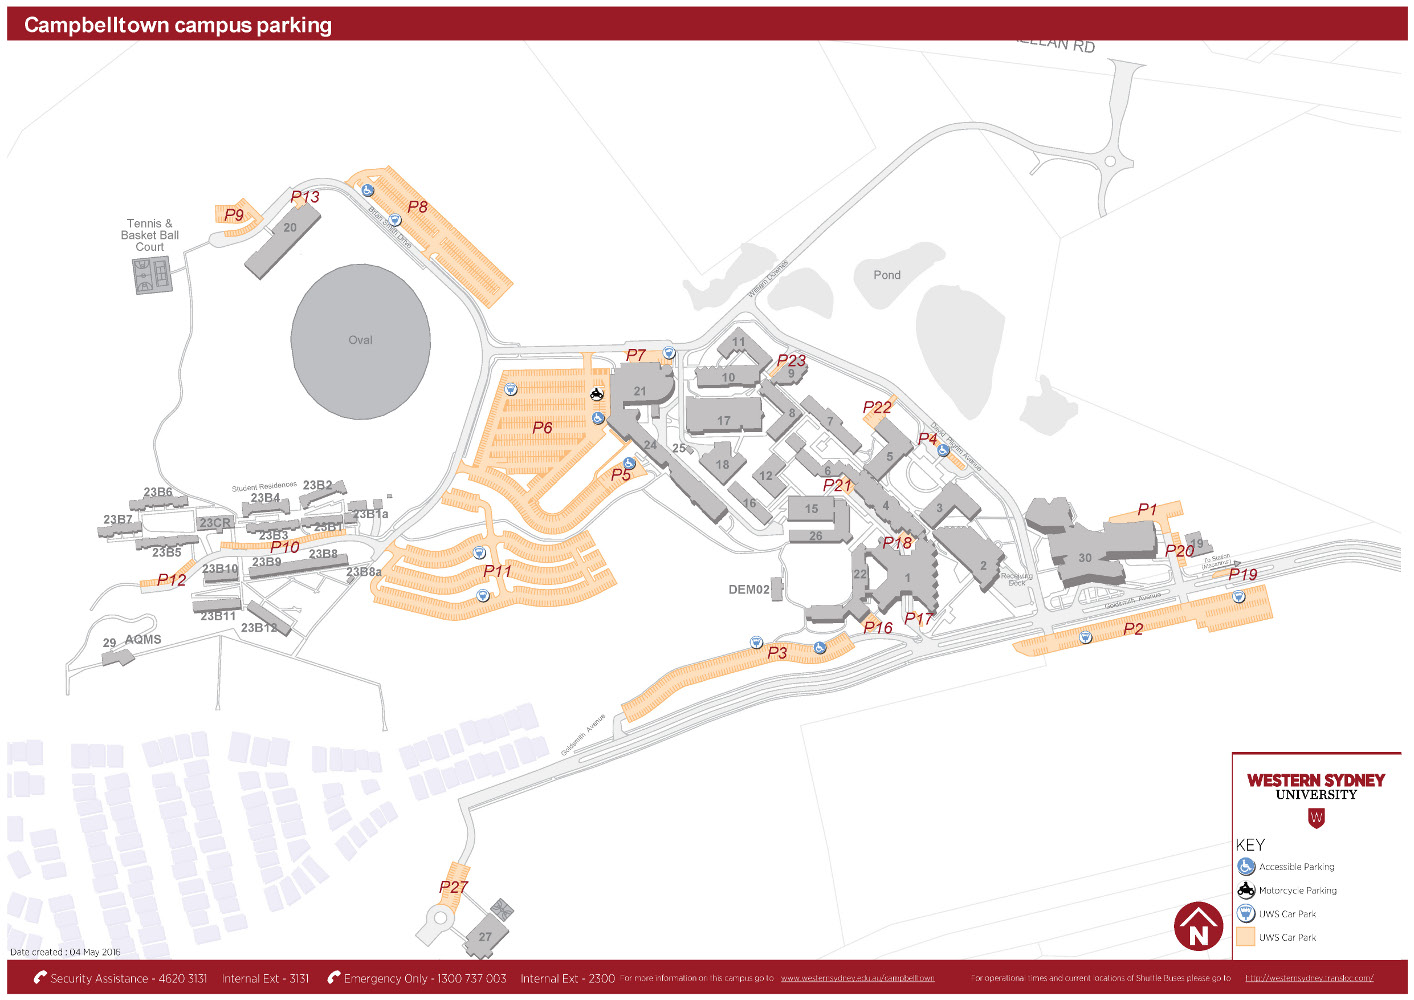 Campbelltown campus parking map